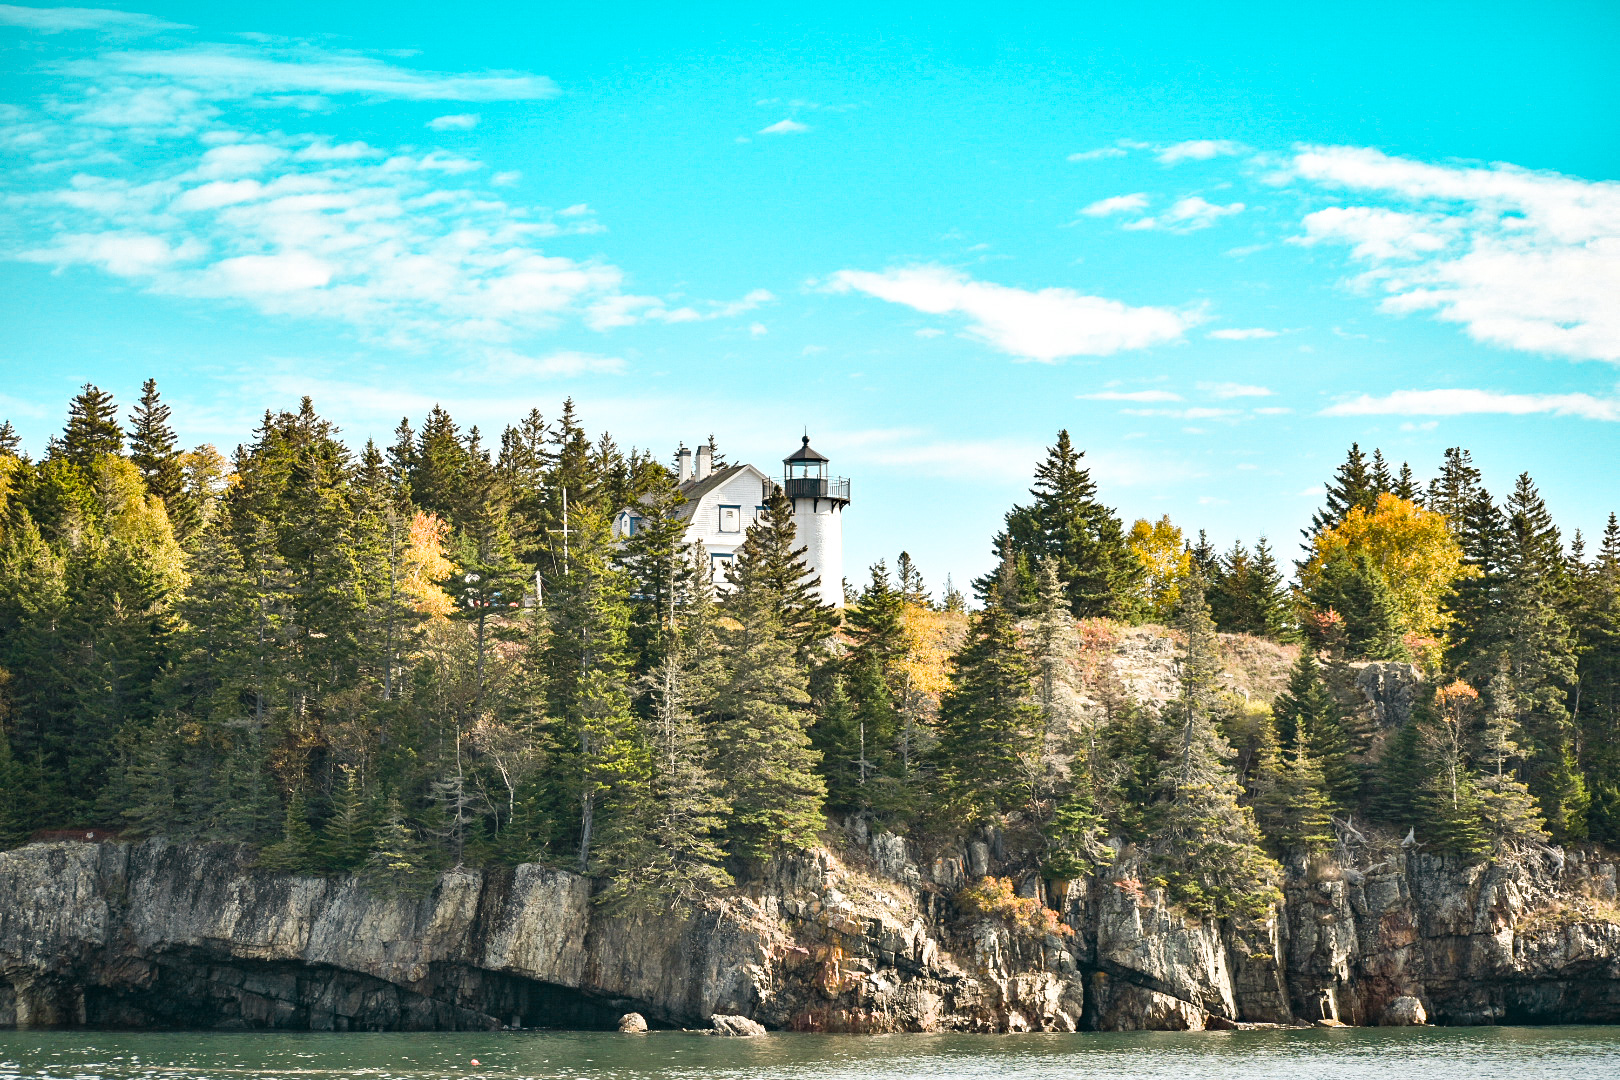 A lighthouse. On a cliff. Outside MDI.